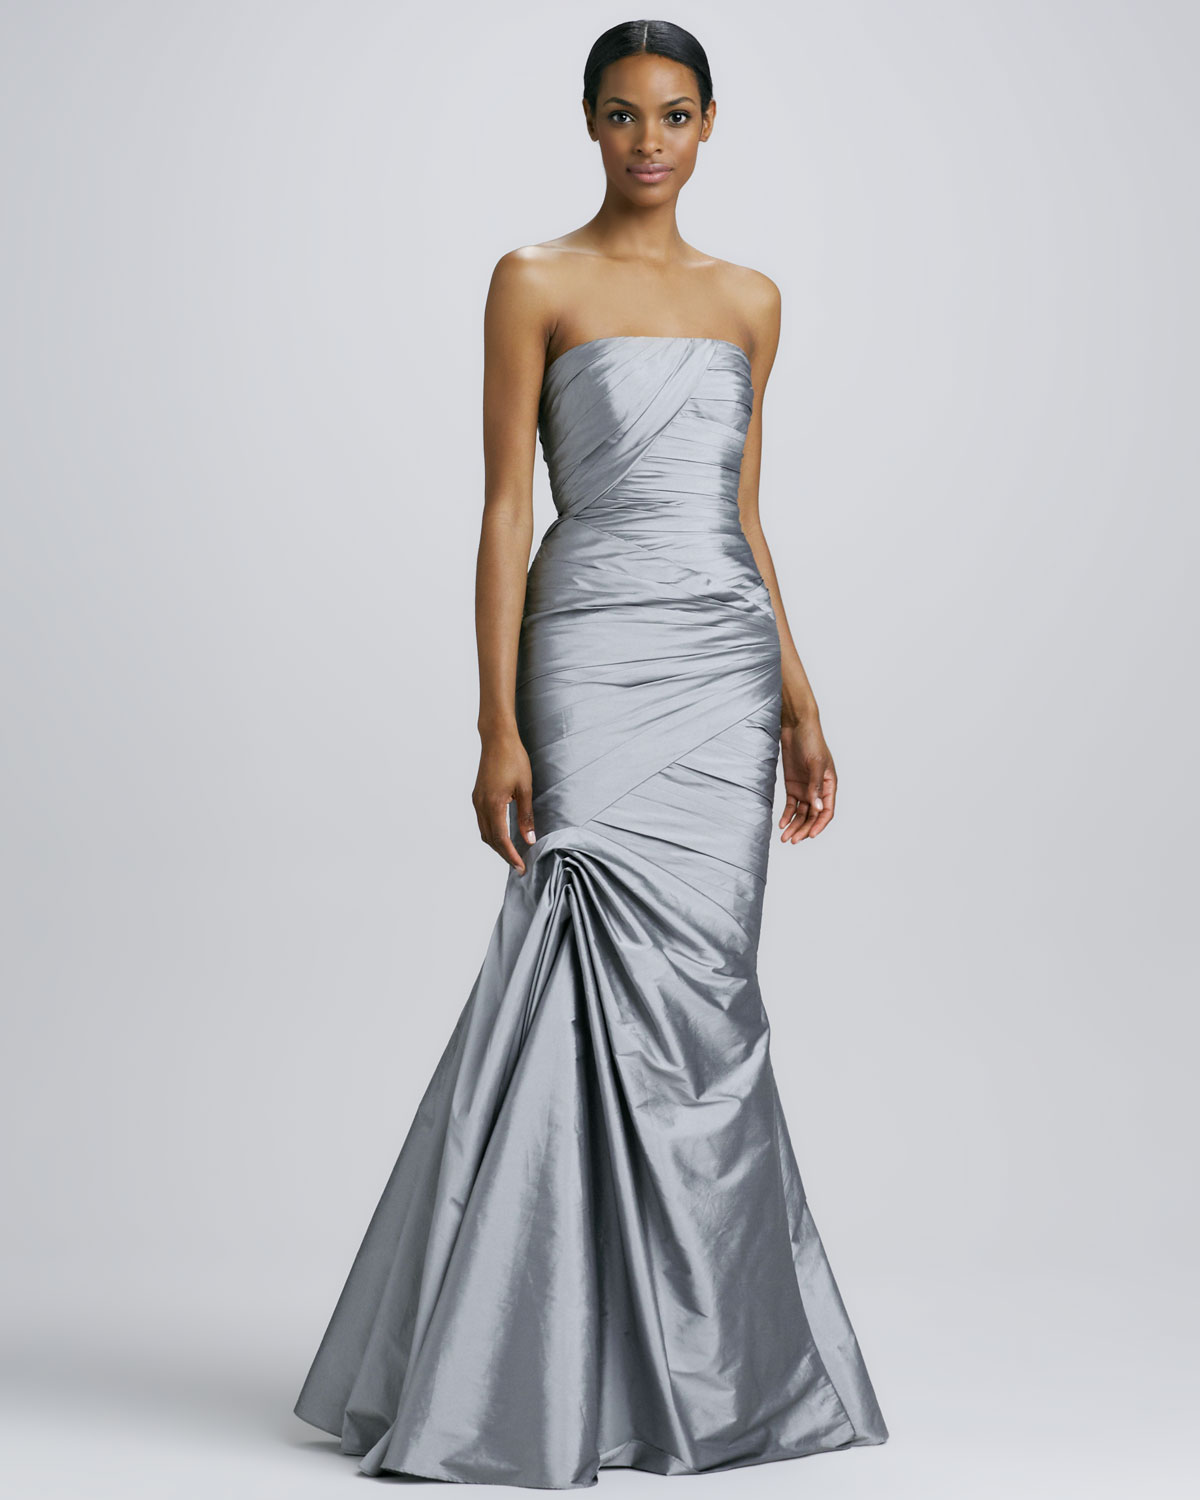 Ml monique lhuillier strapless trumpet gown in metallic lyst gallery previously sold at neiman marcus ombrellifo Choice Image